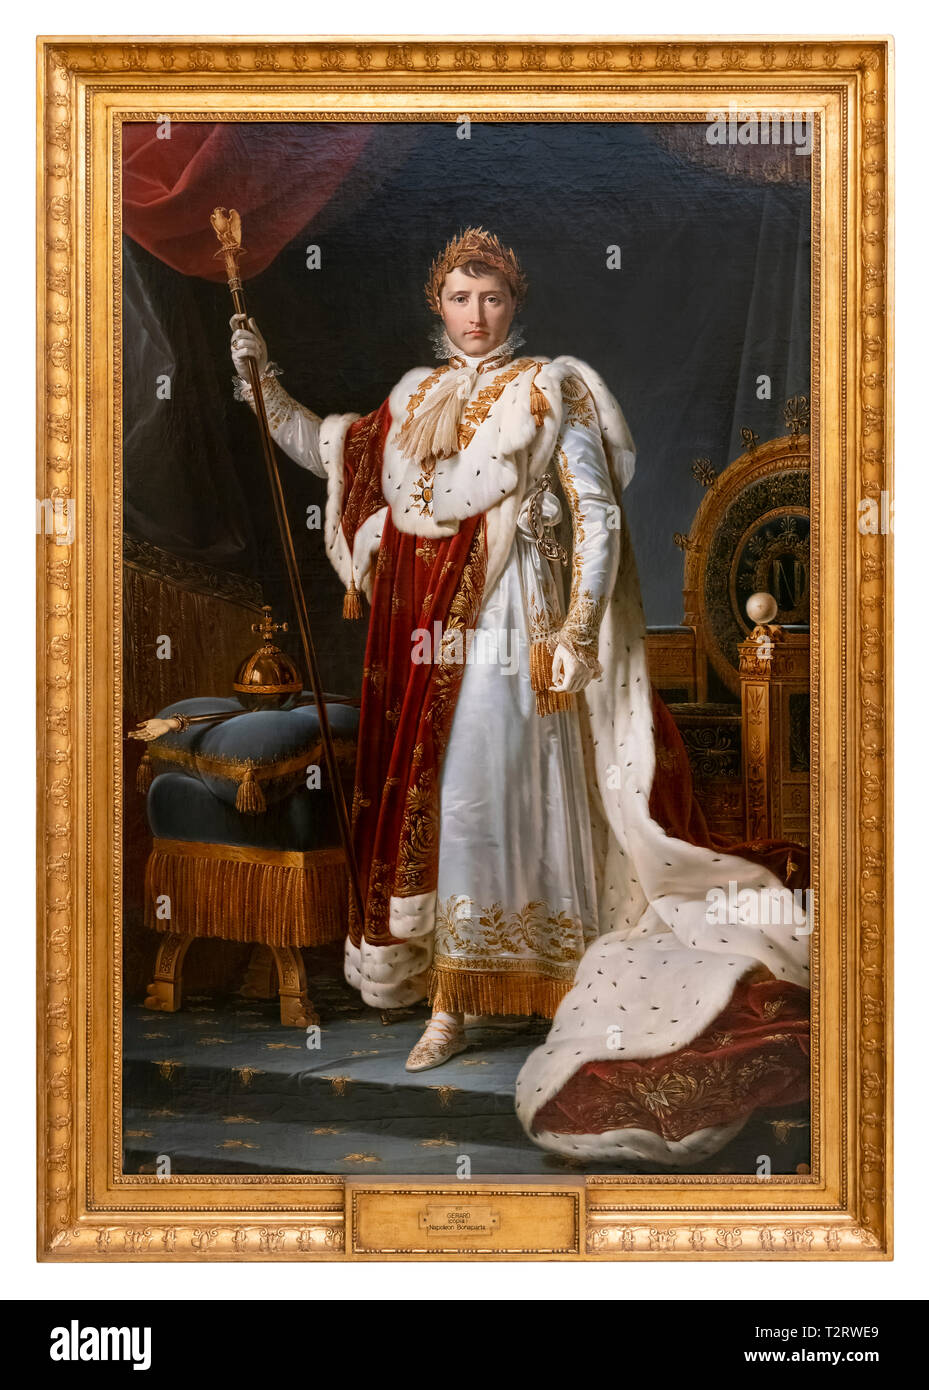 Coronation of Napoleon Bonaparte. Emperor Napoleon portrait painting in coronation dress and insignia by François Gérard (workshop of) 1805 - Stock Image